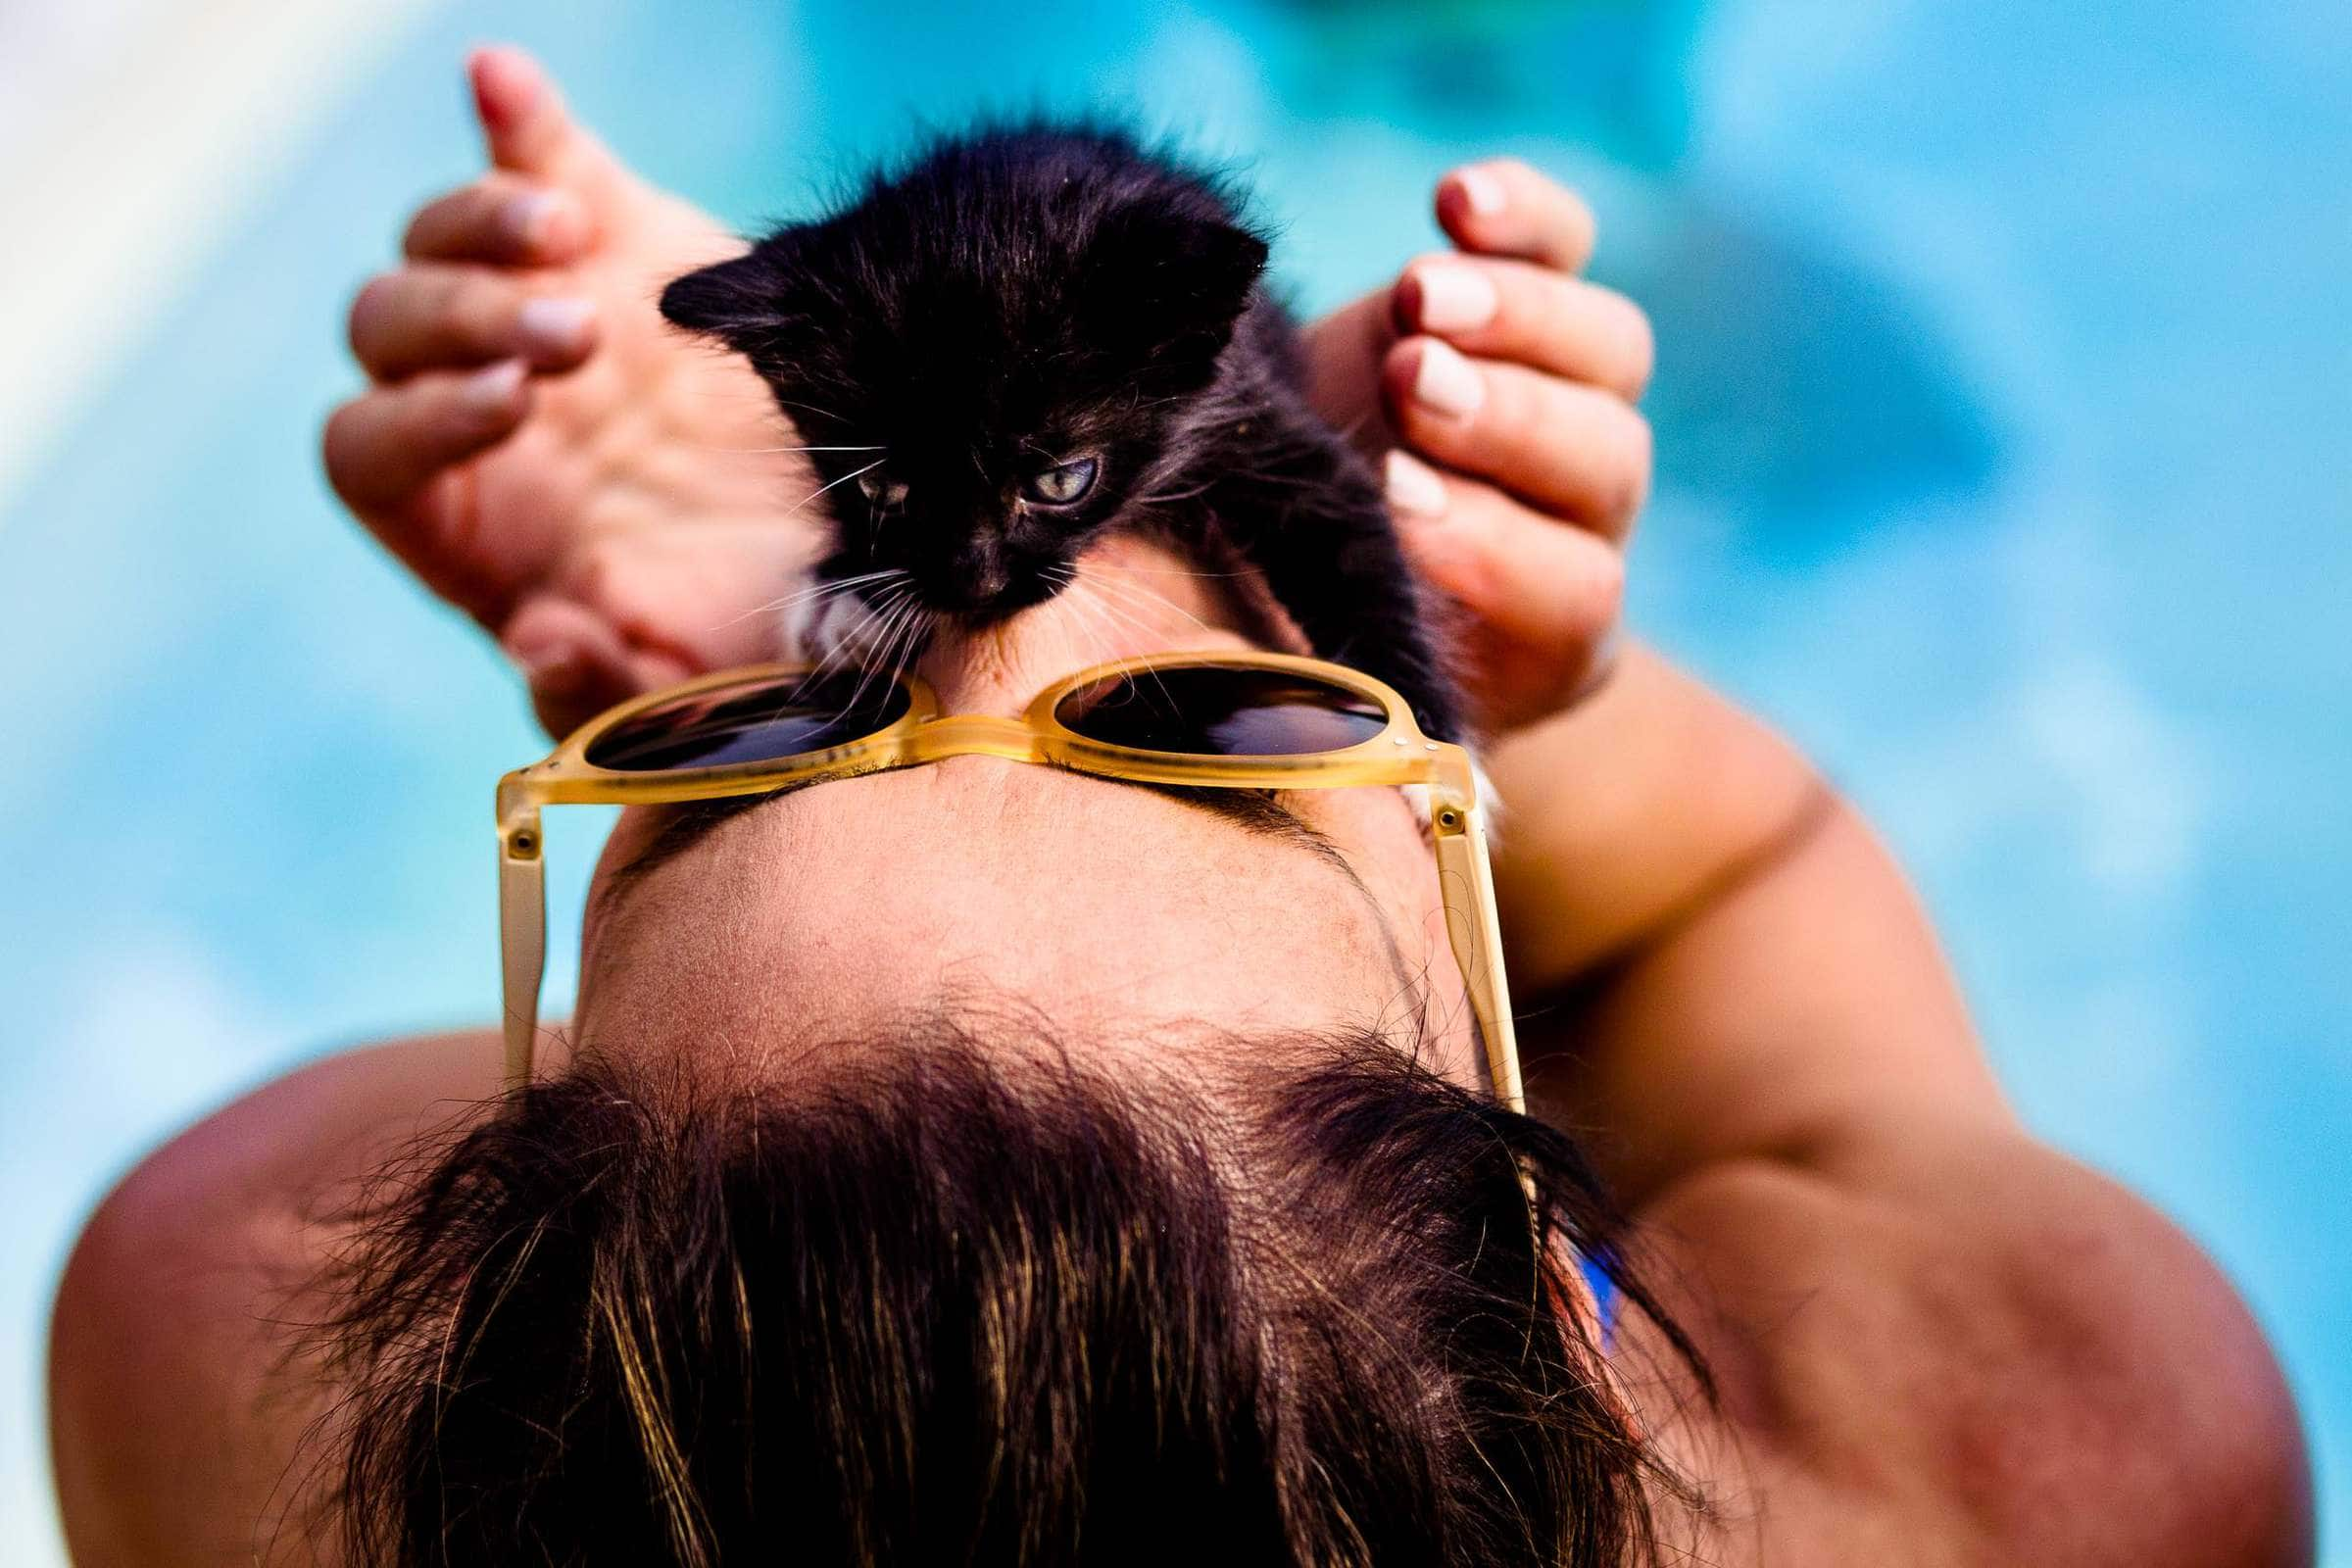 Kitten playing with woman at a pool party during a Villa Tre Grazie wedding celebration near Todi, Italy.